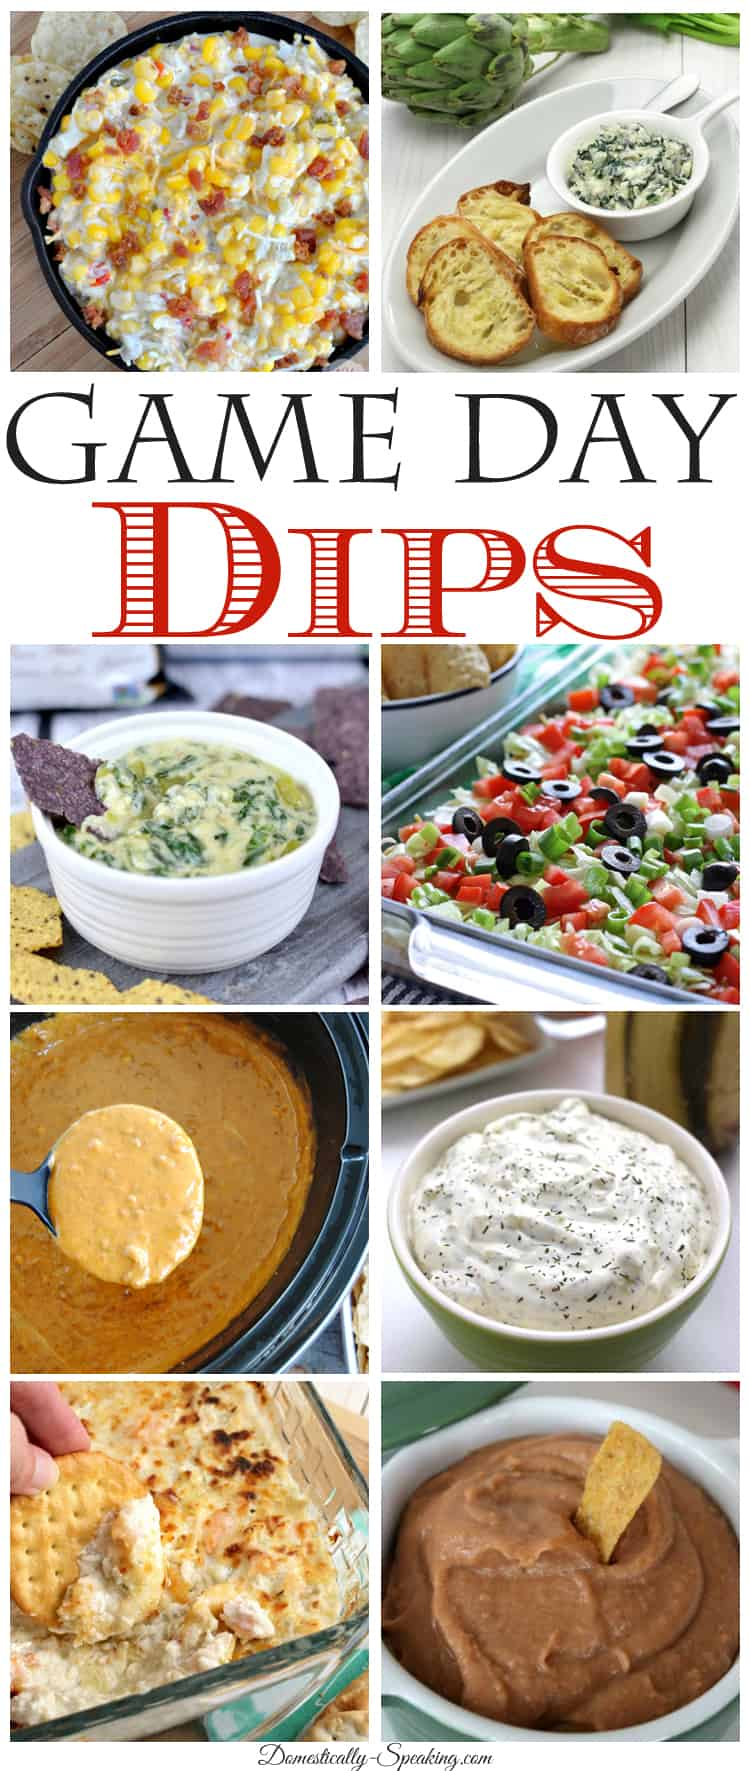 Game Day Dips perfect dips for the big game - corn and bacon, artichoke and spinach, bean dip, taco and many more